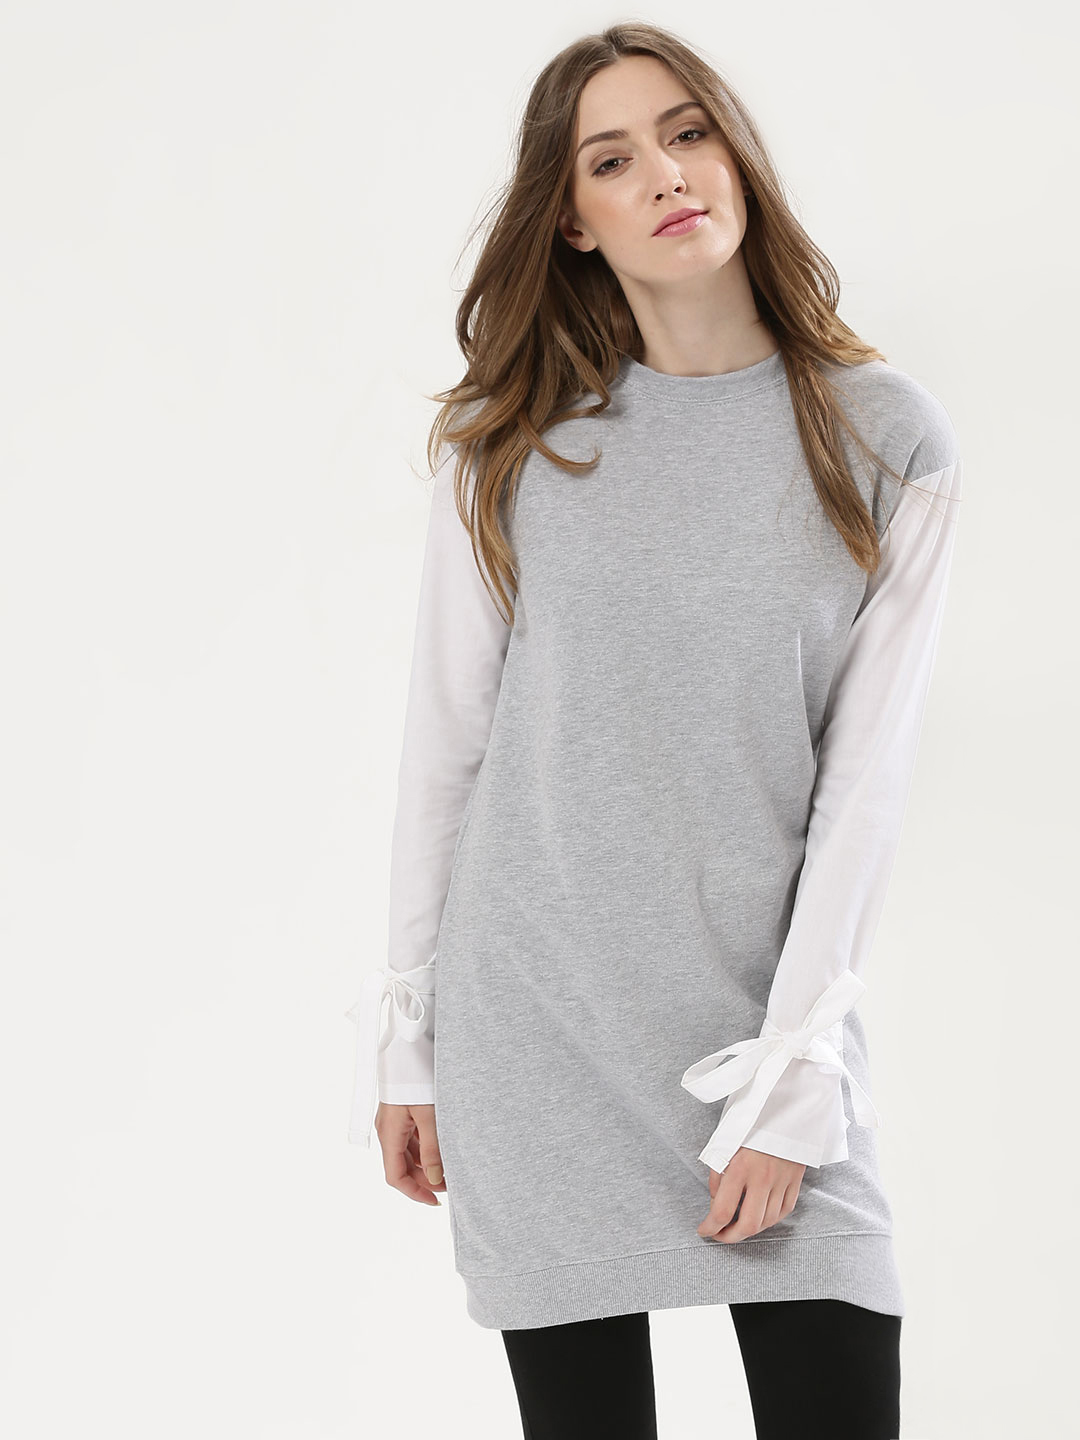 Daisy Street Grey Sweatshirt With Contrast Sleeves And Tie Detail 1